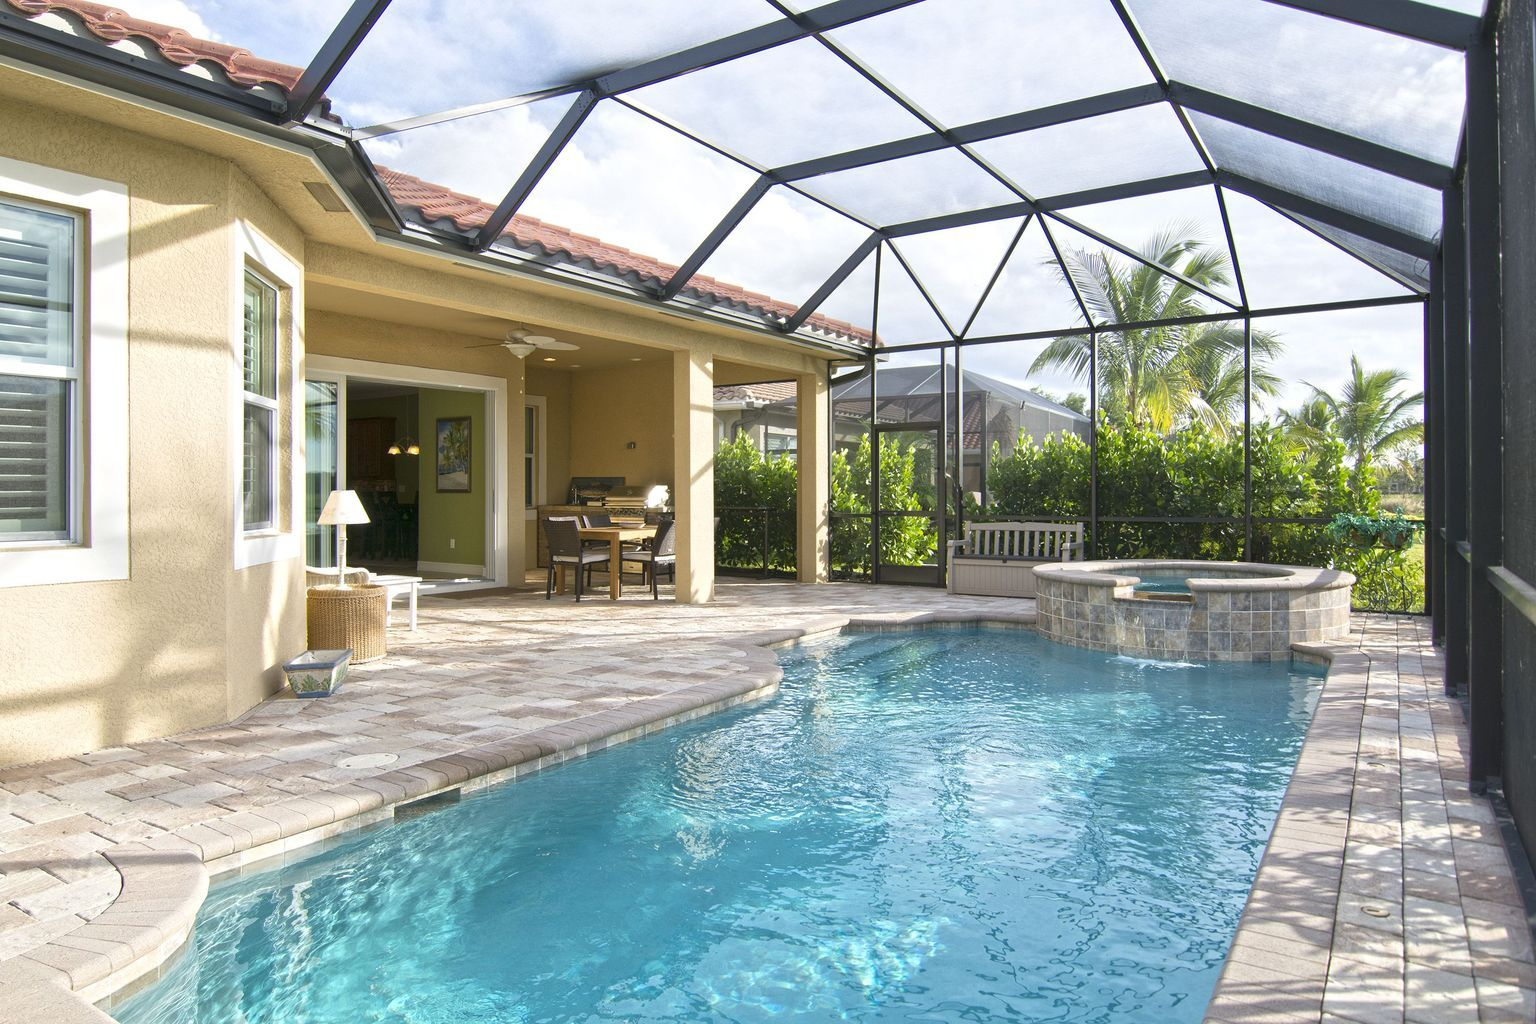 25 Screened In And Covered Pool Design Ideas Backyard Pool Pool